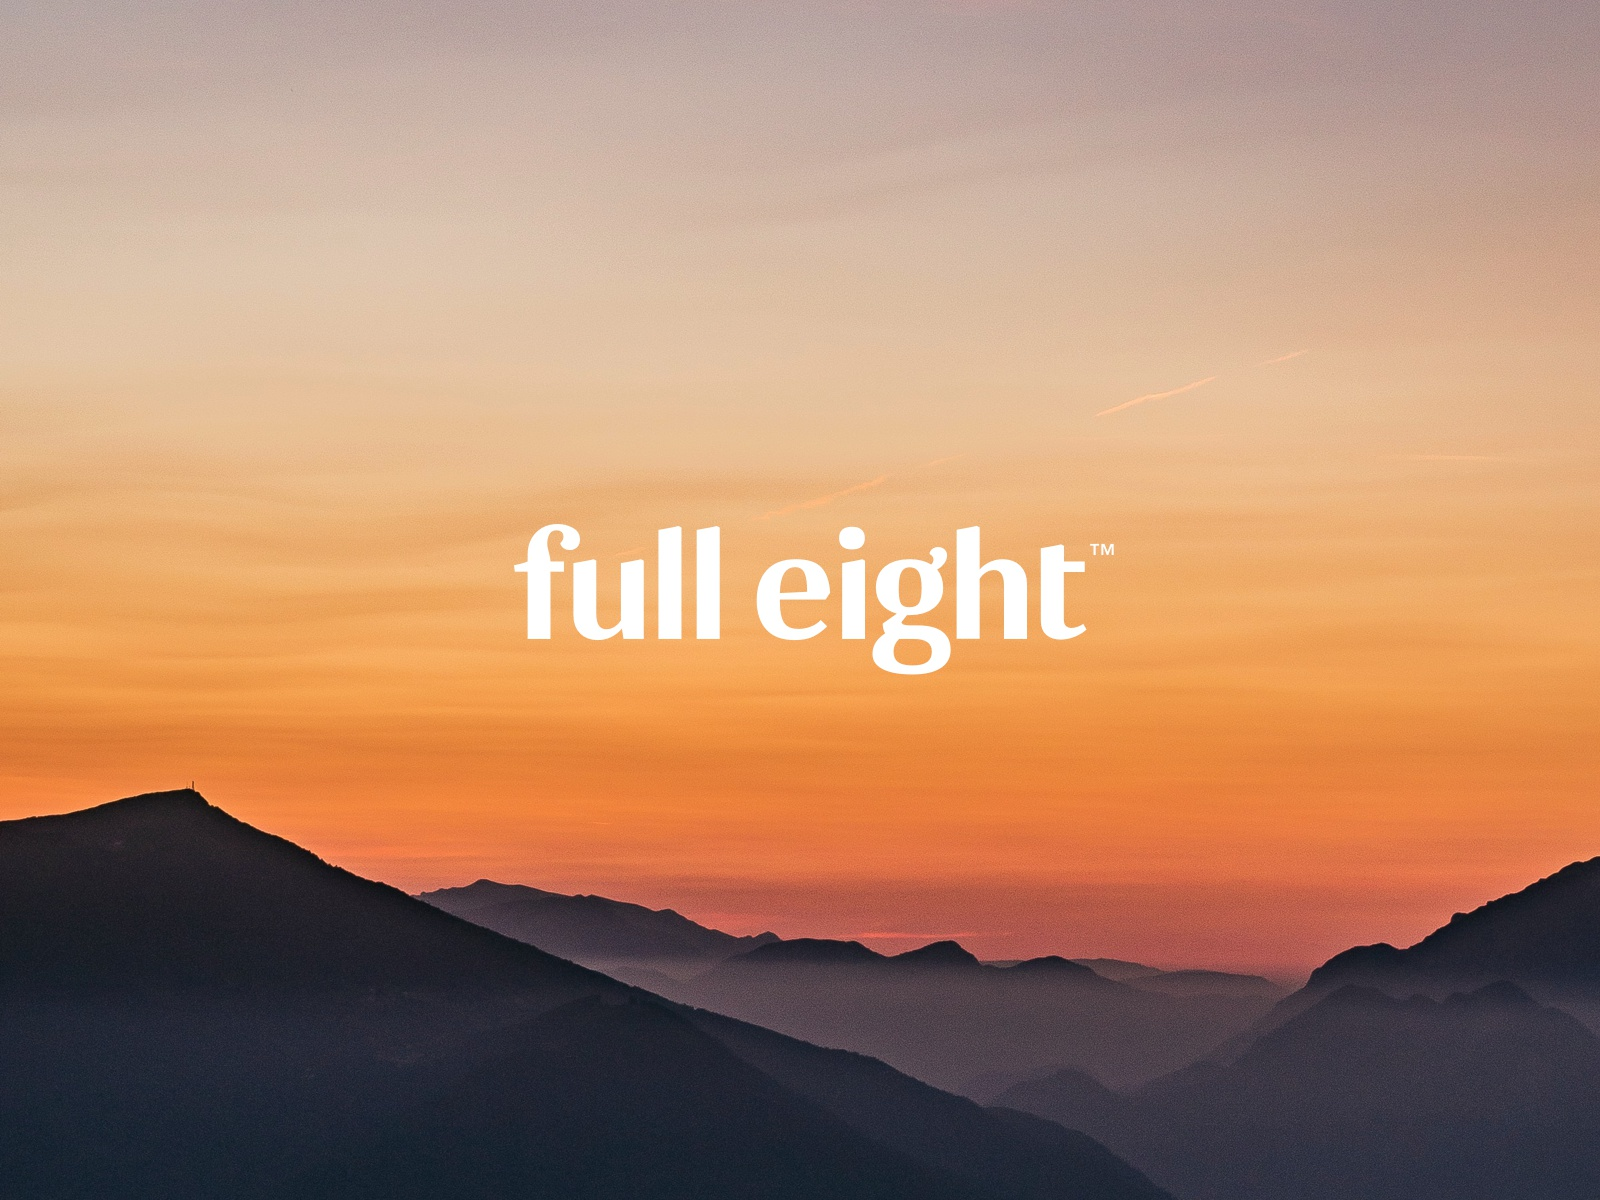 FullEight visual identity: Kind words